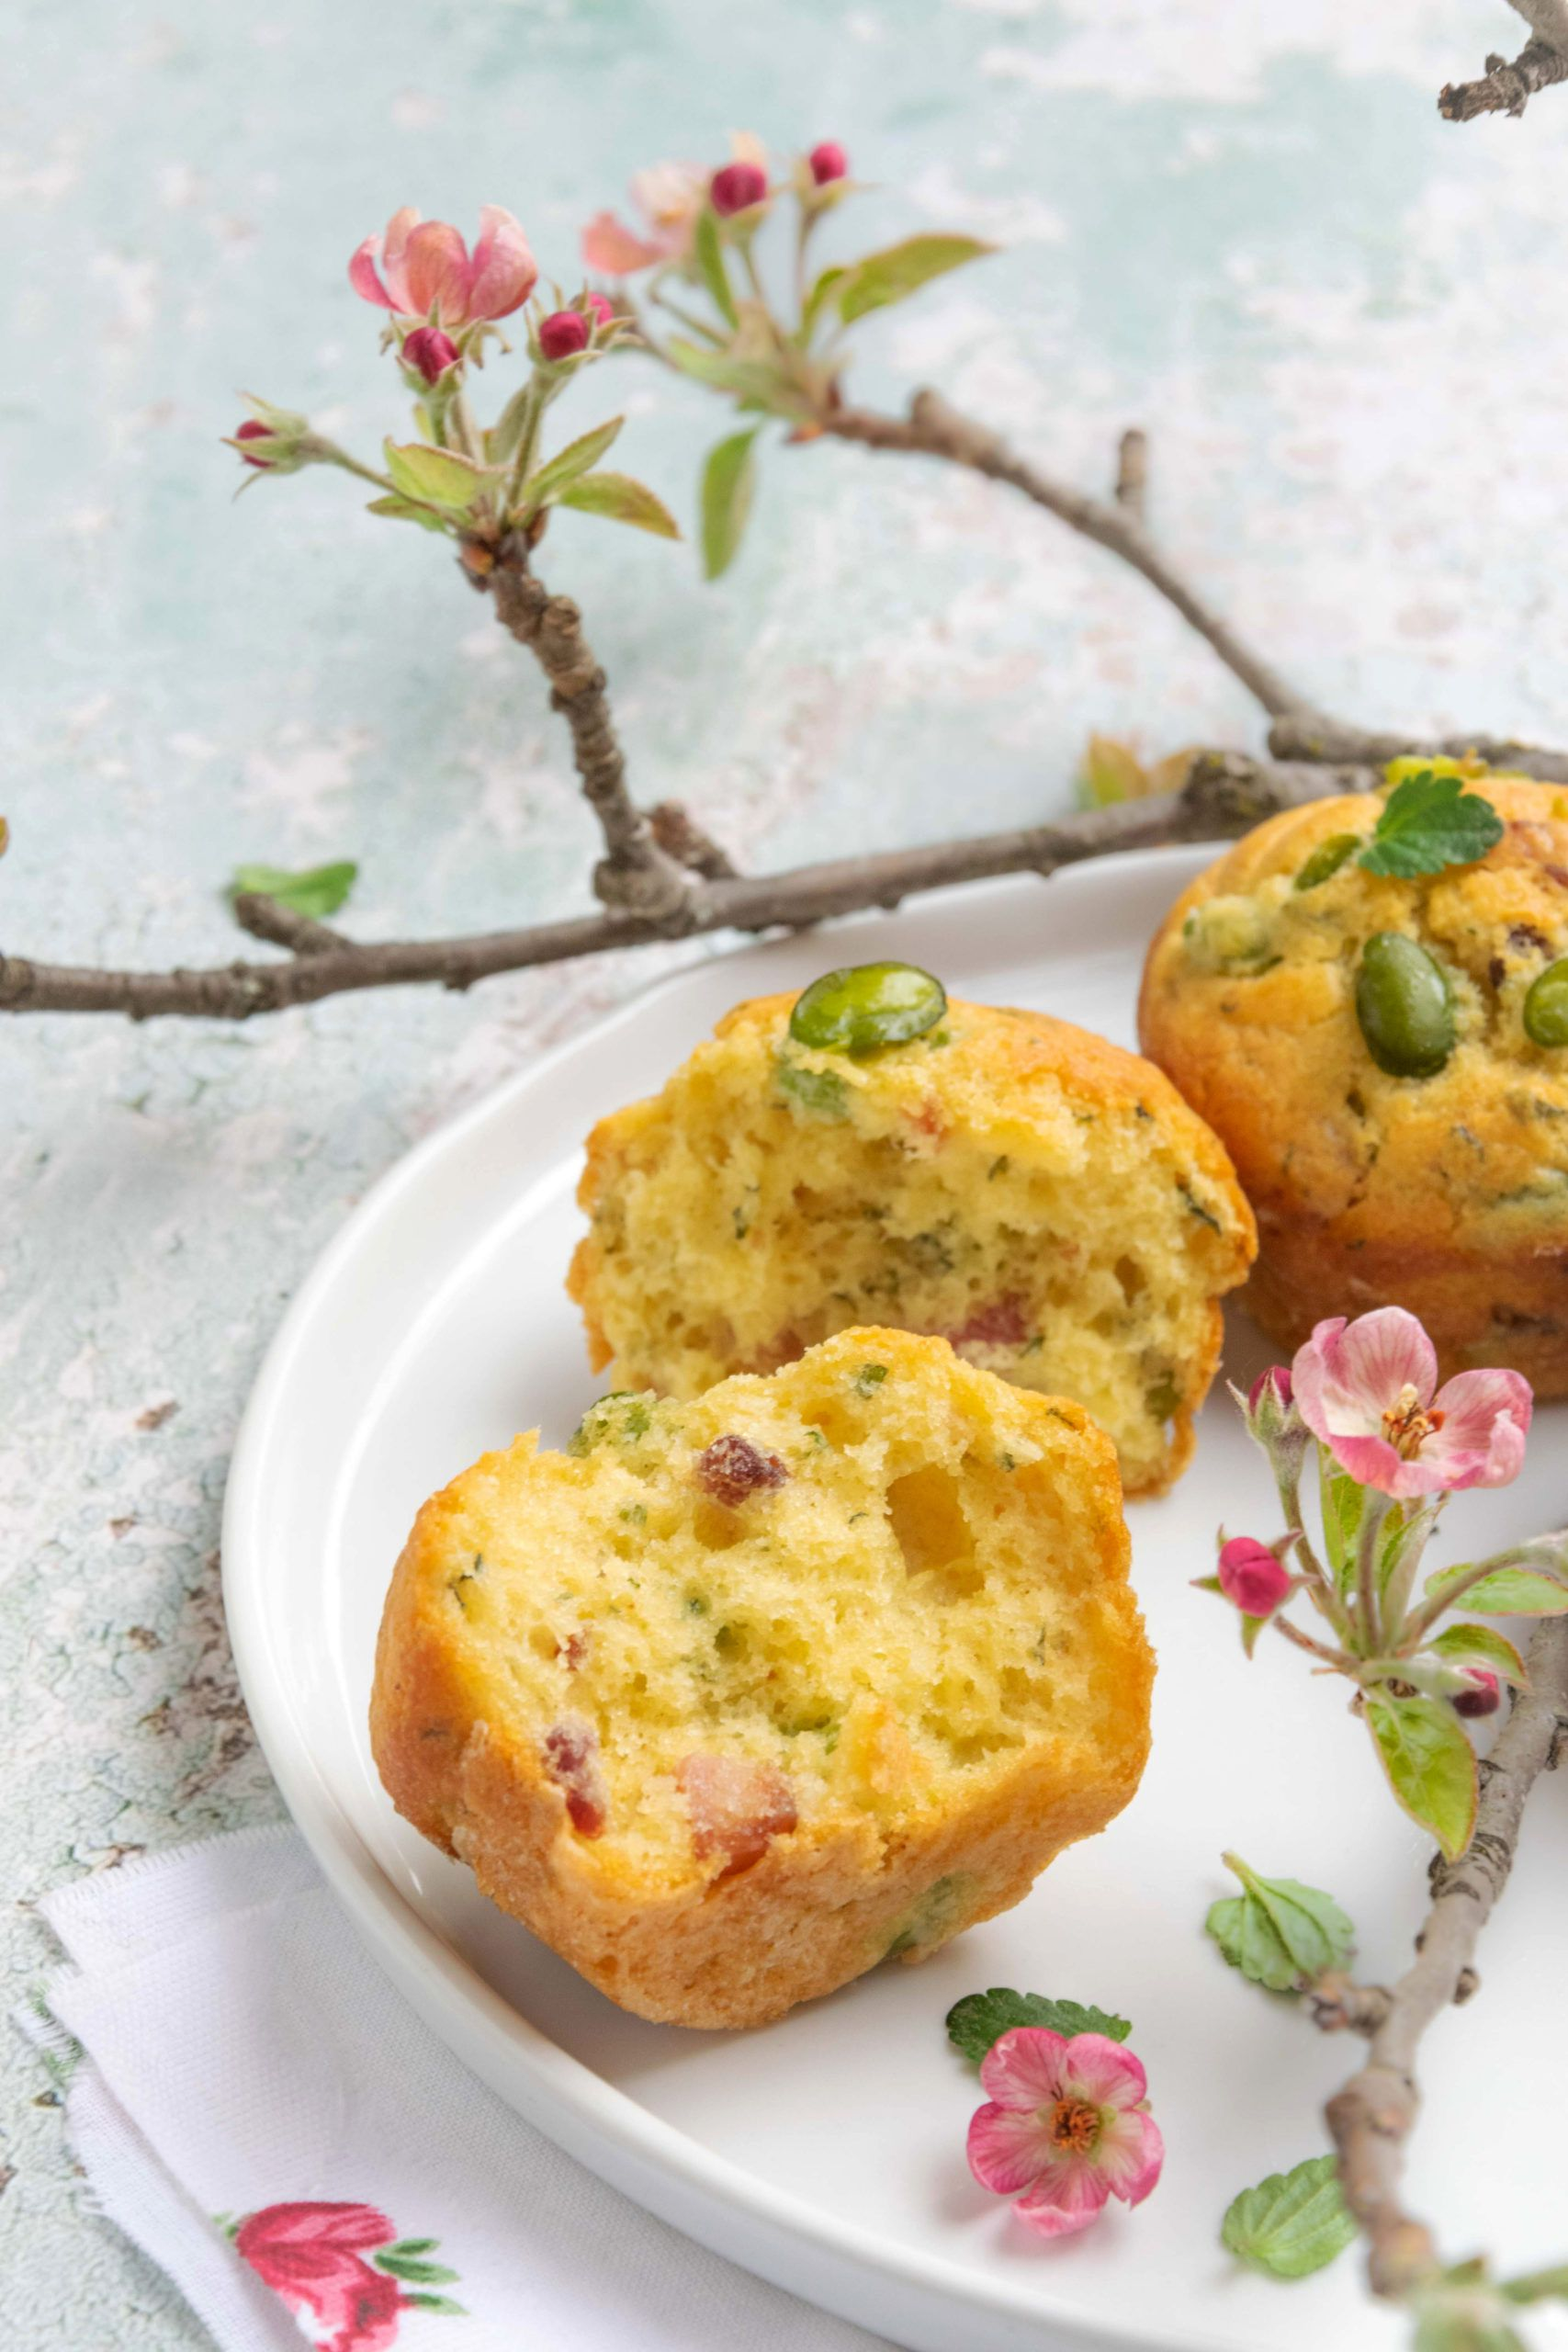 Muffins alle fave con guanciale